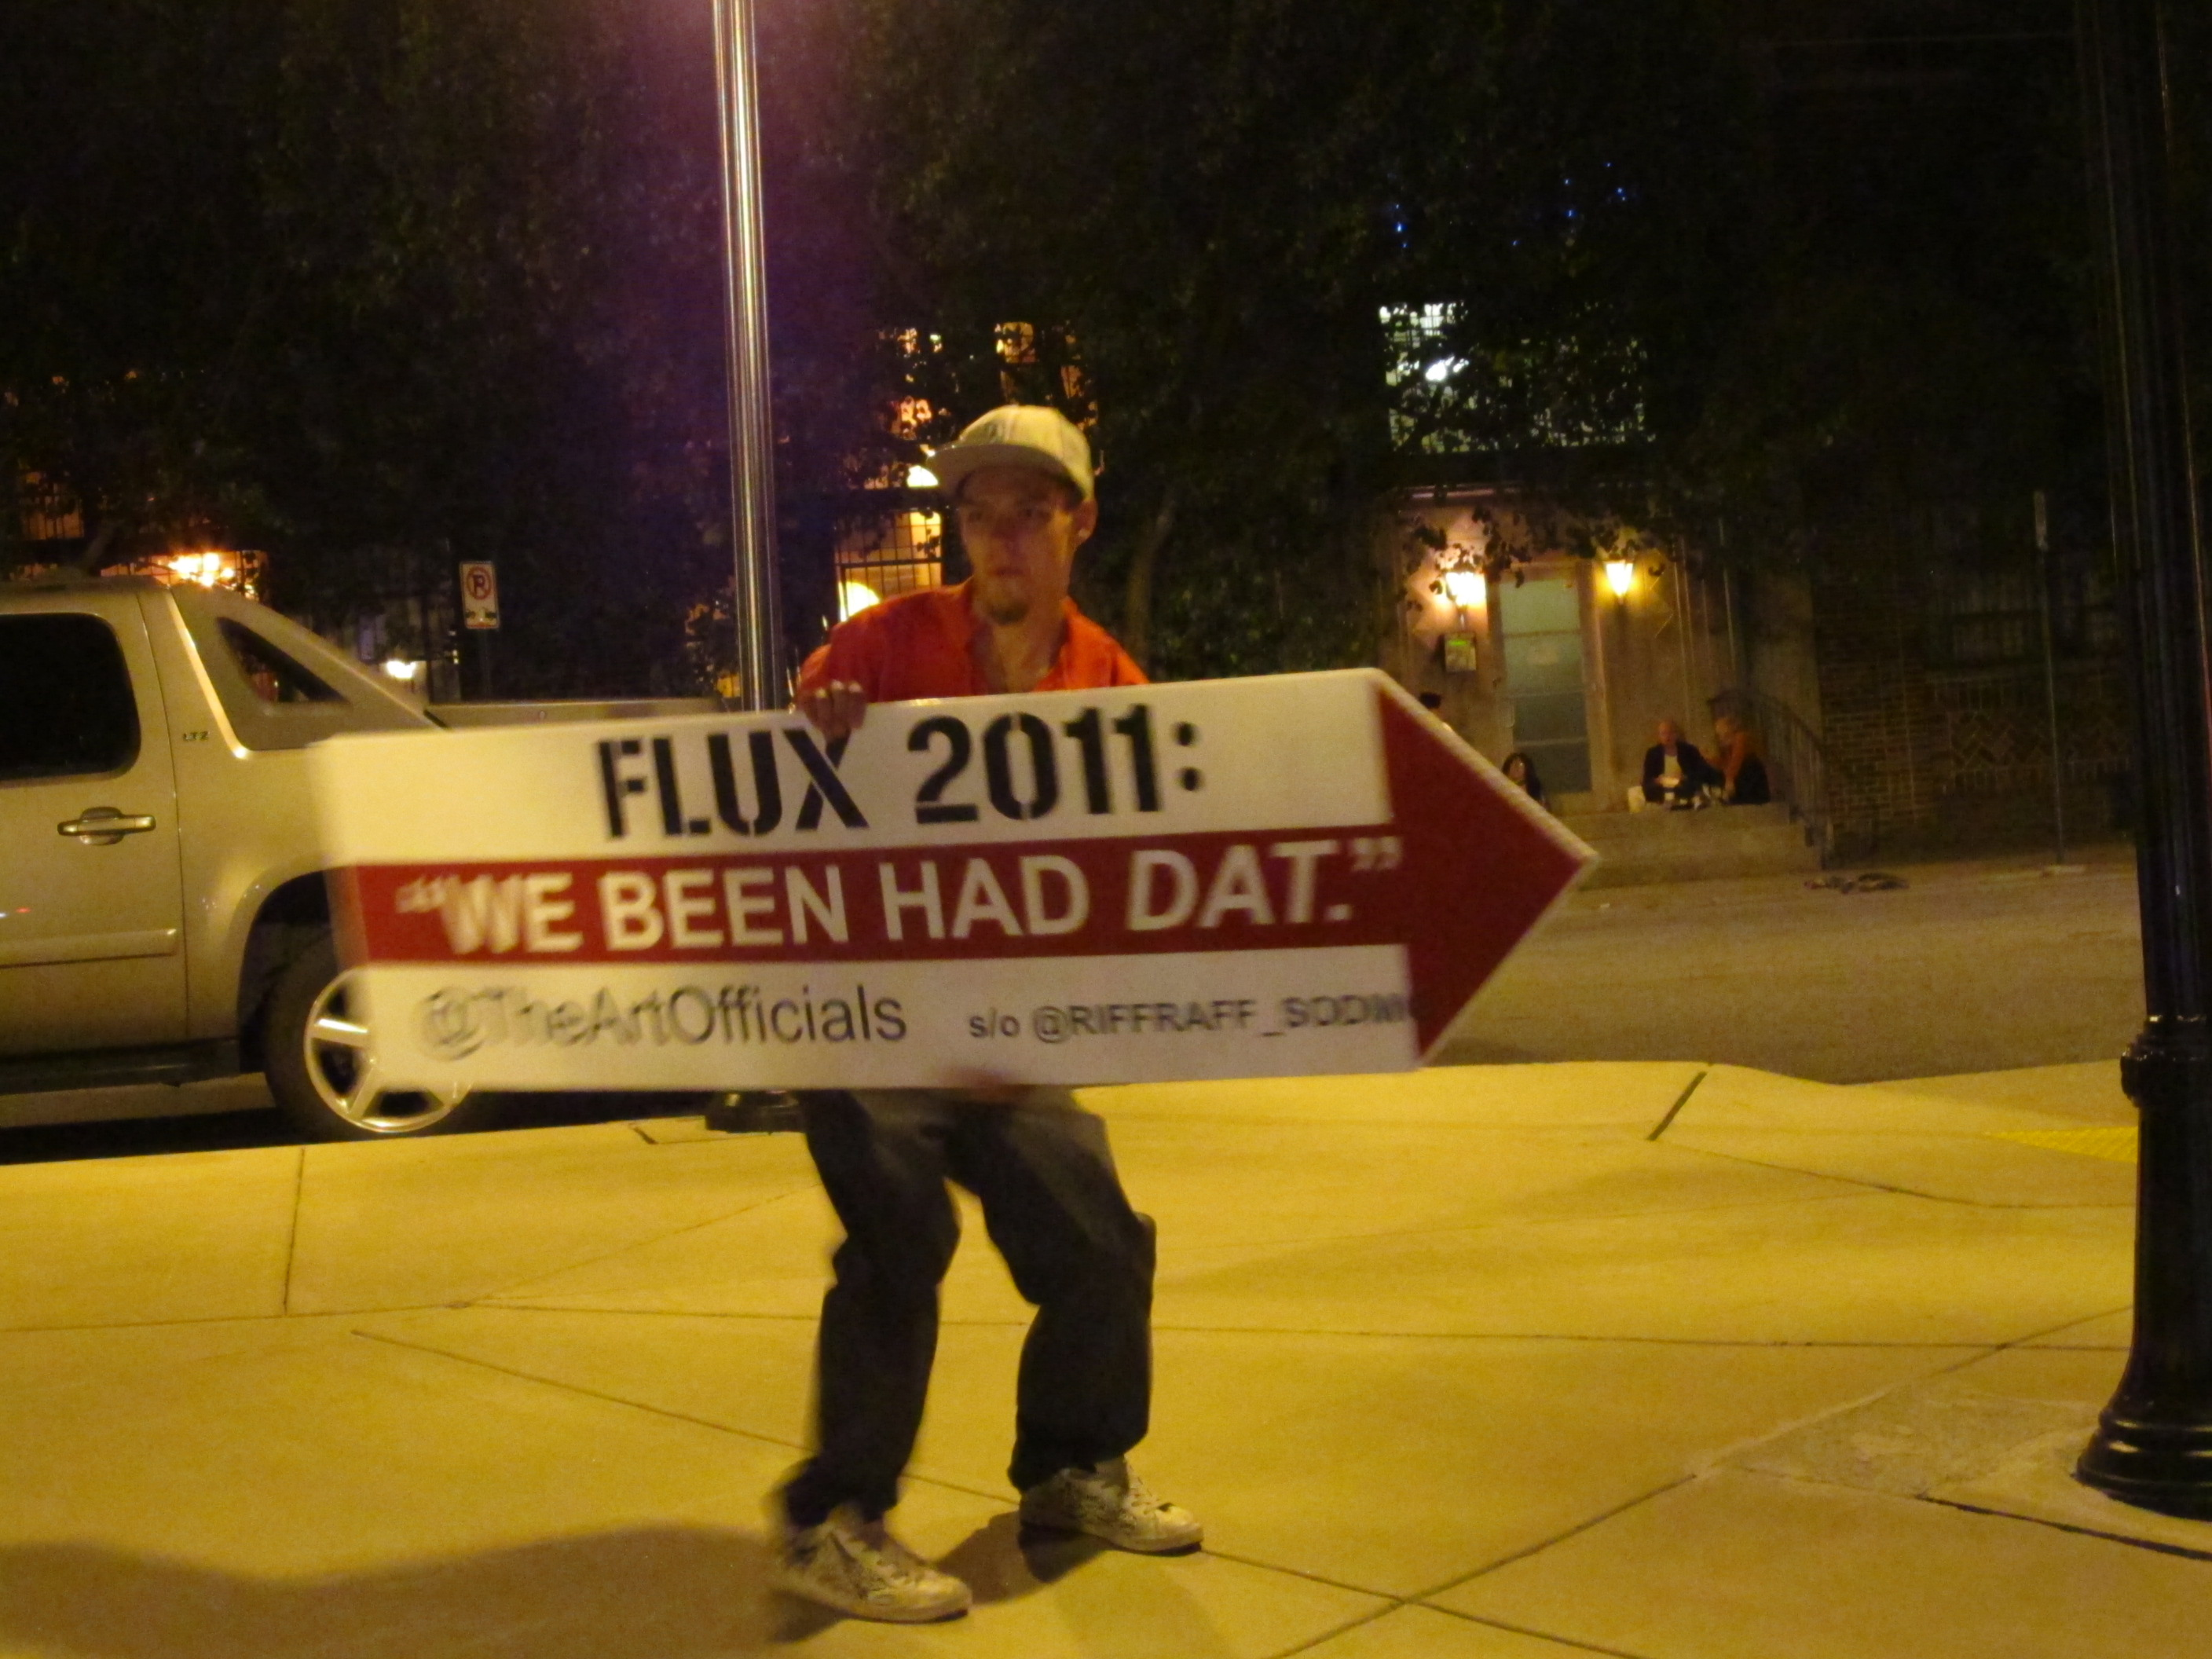 """We Been Had Dat!"" Flux 2011"